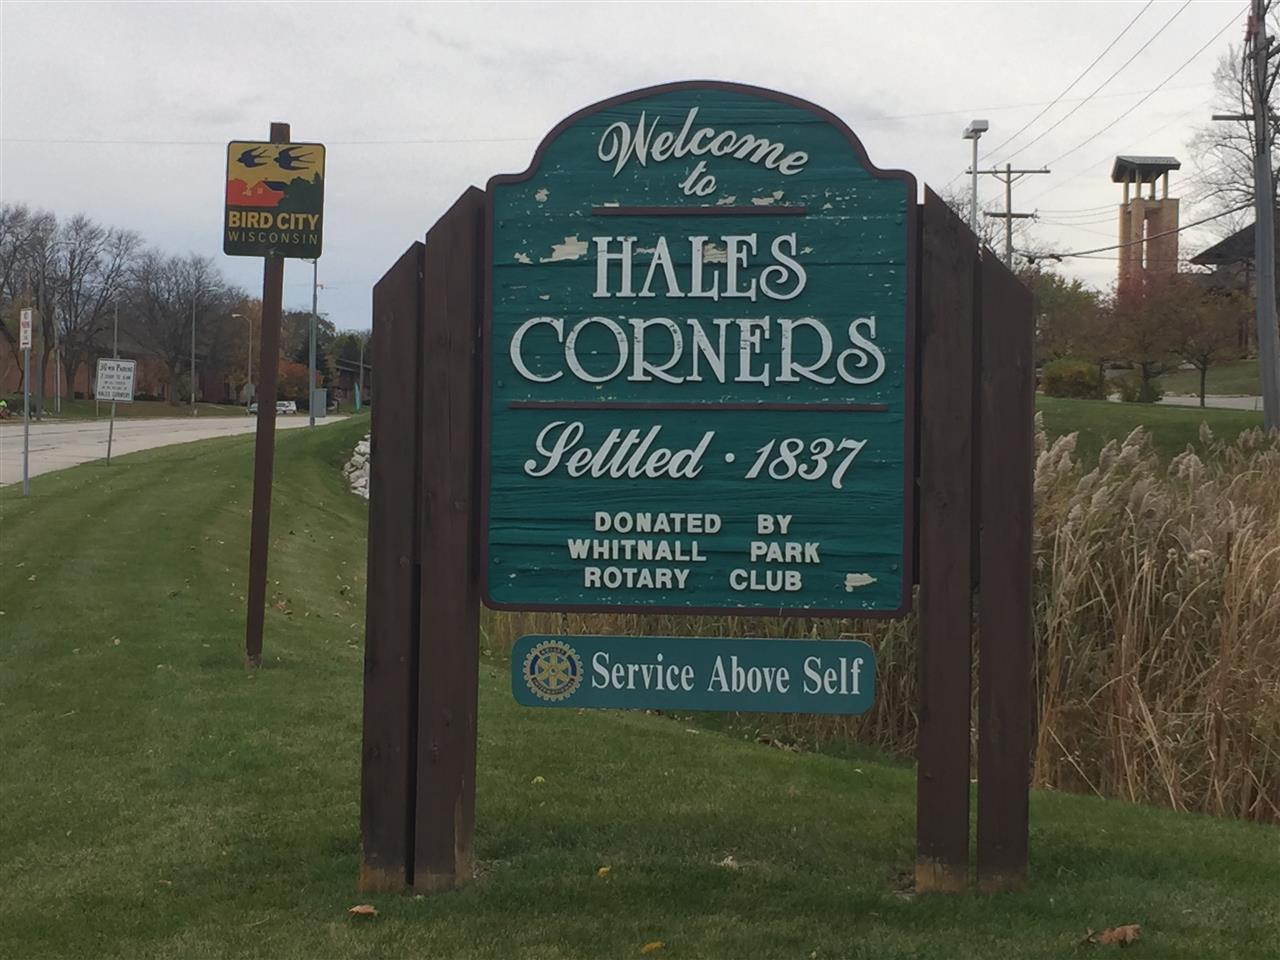 Village of Hales Corners, WI is known as the Bird City of WIsconsin